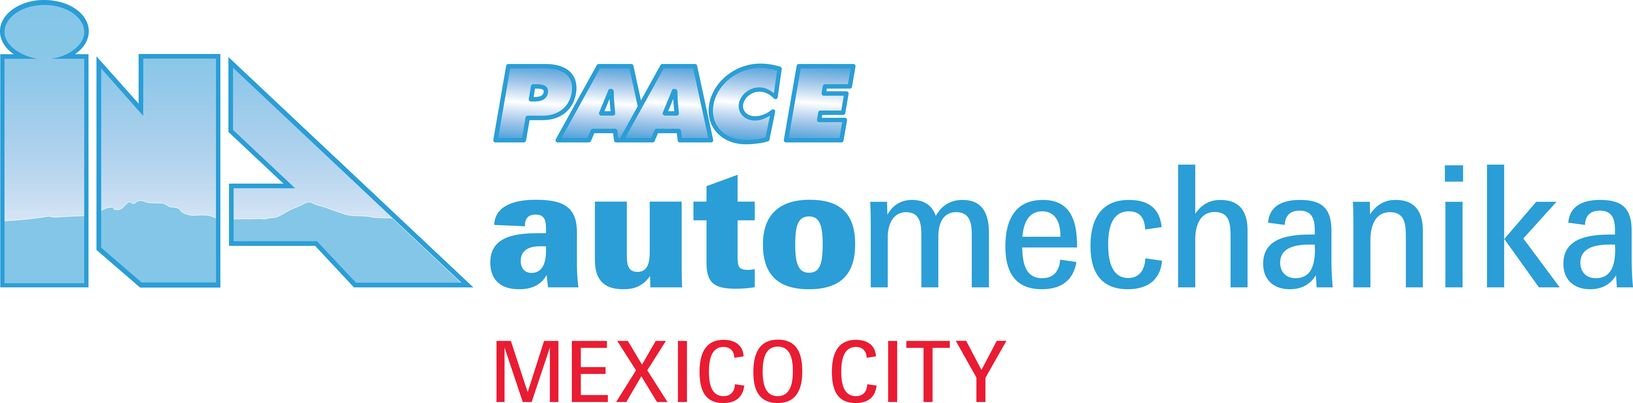 PAACE Automechanika Mexico 2016